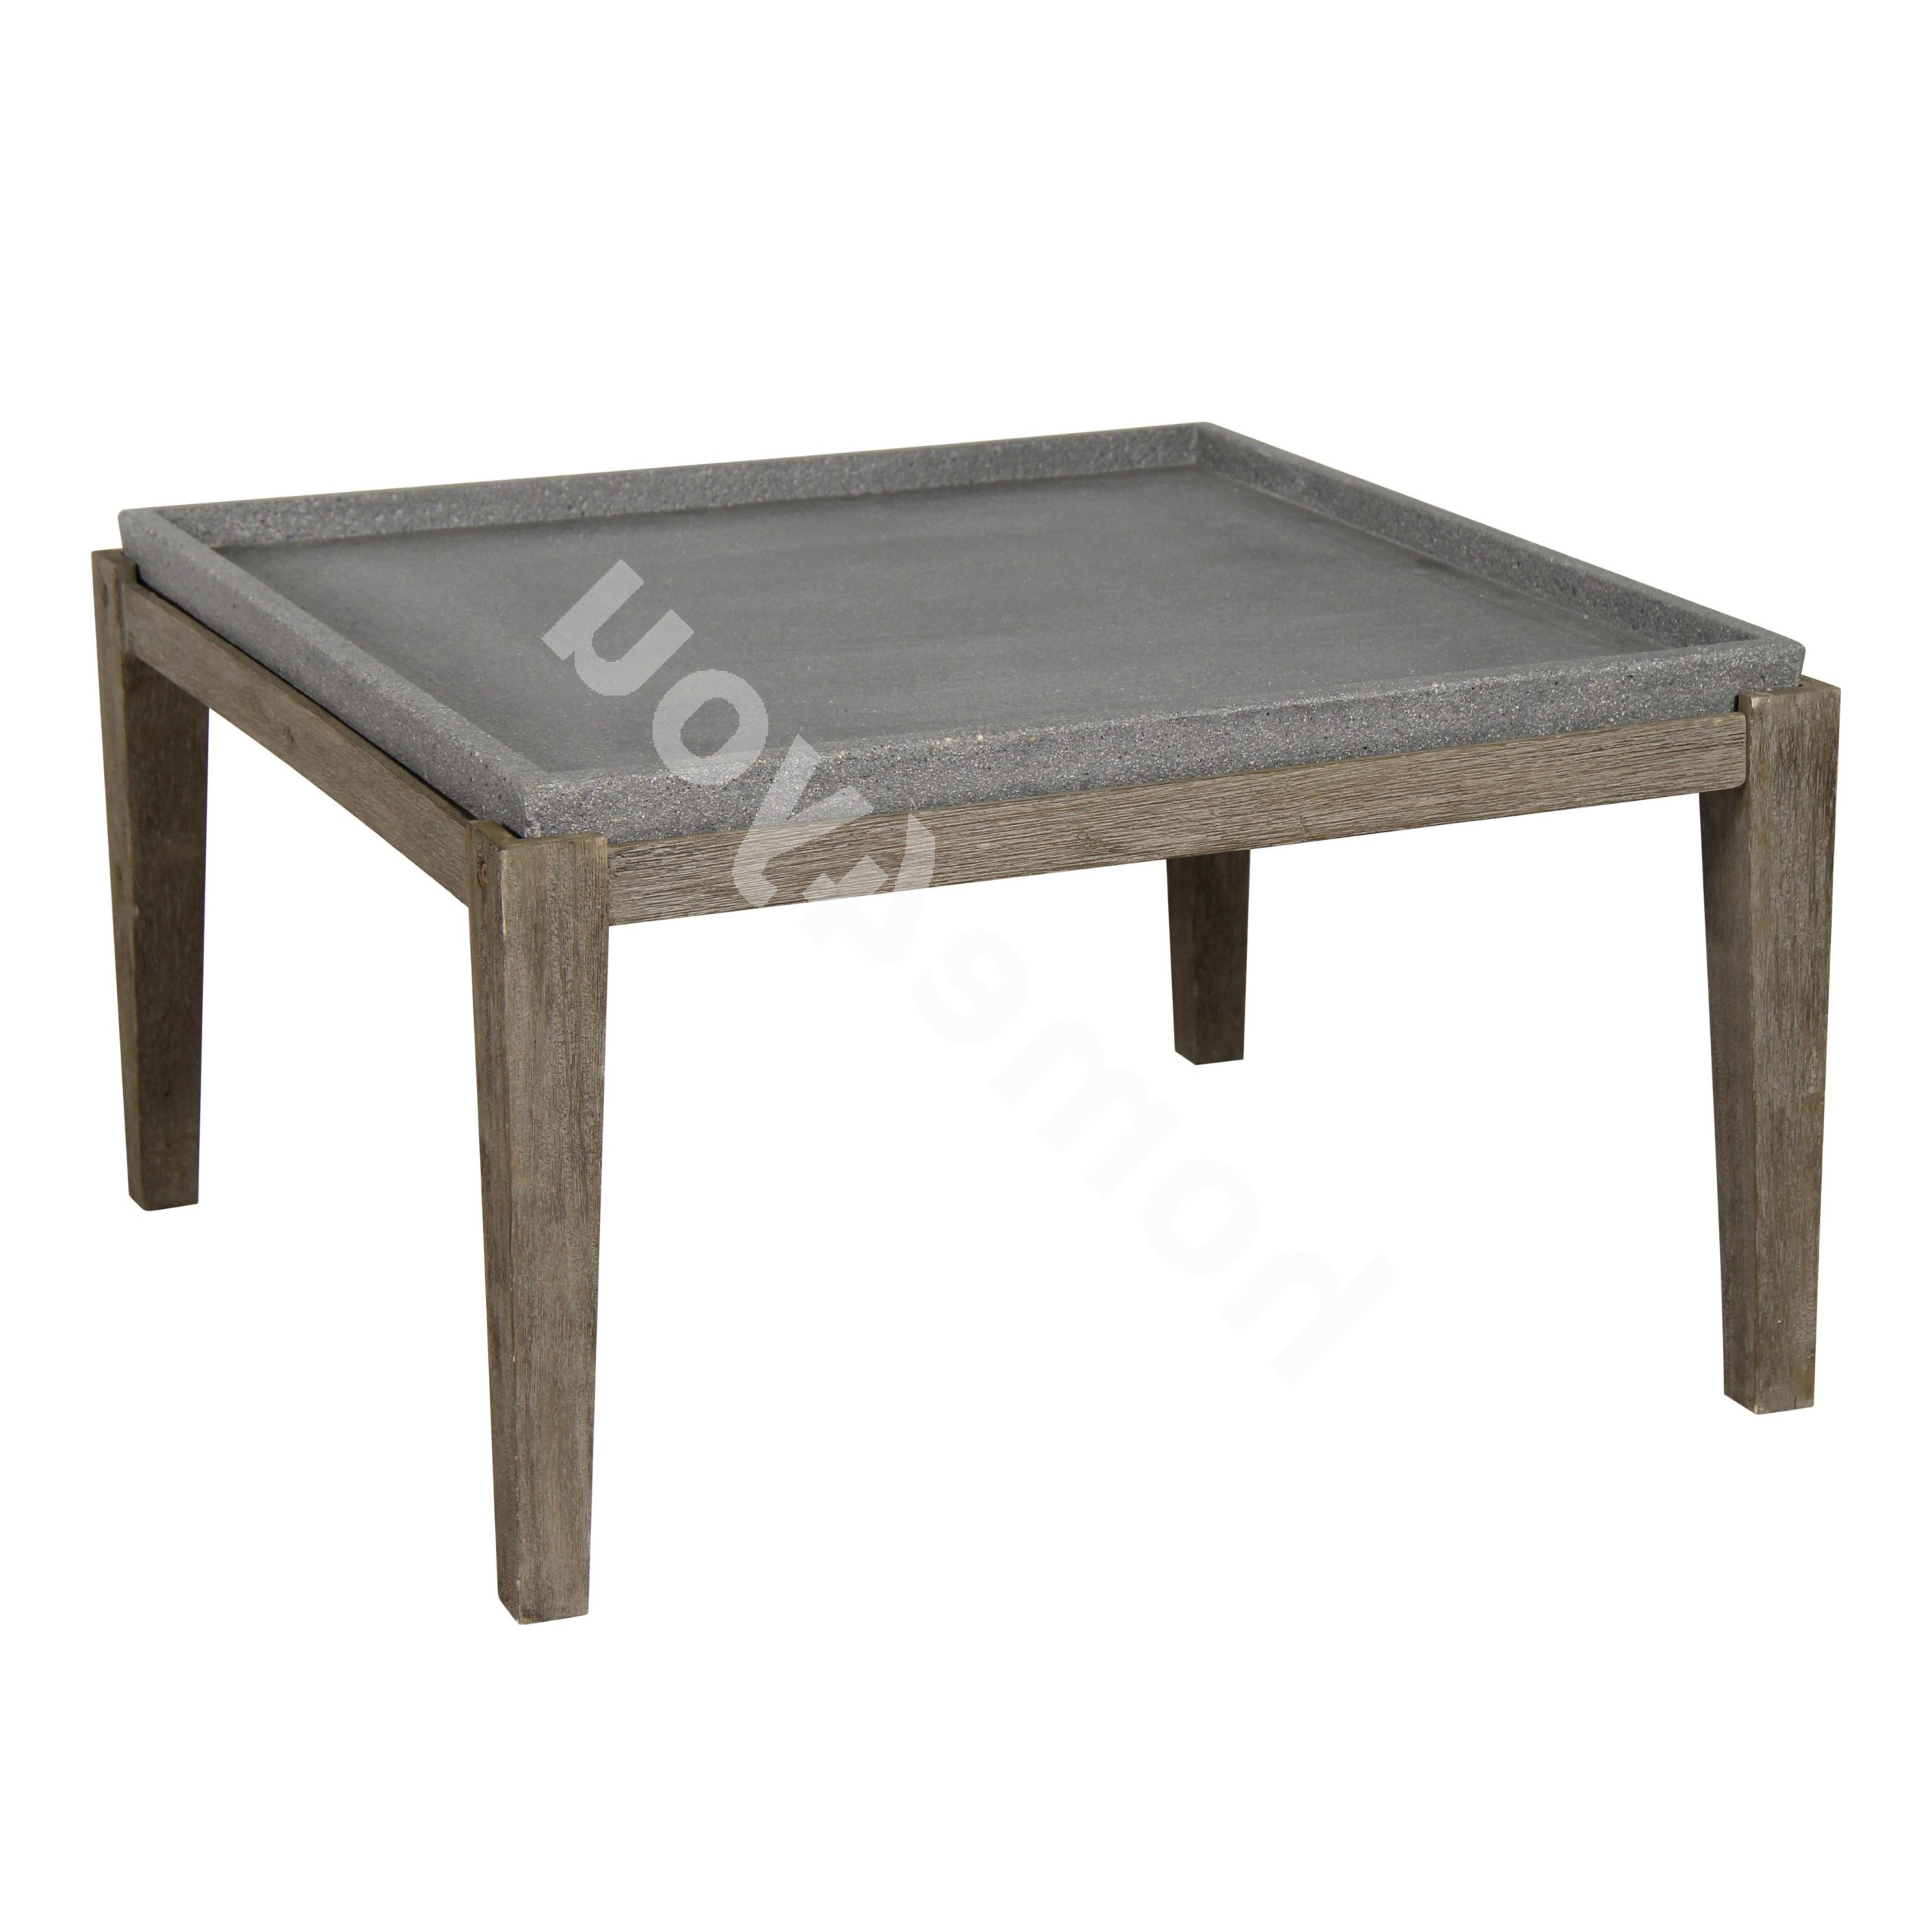 Recent Acacia Dining Tables With Black-Legs inside Side Table Sandstone 83,5X83,5Xh45,5Cm, Table Top: Polystone, Acacia Wood  Legs